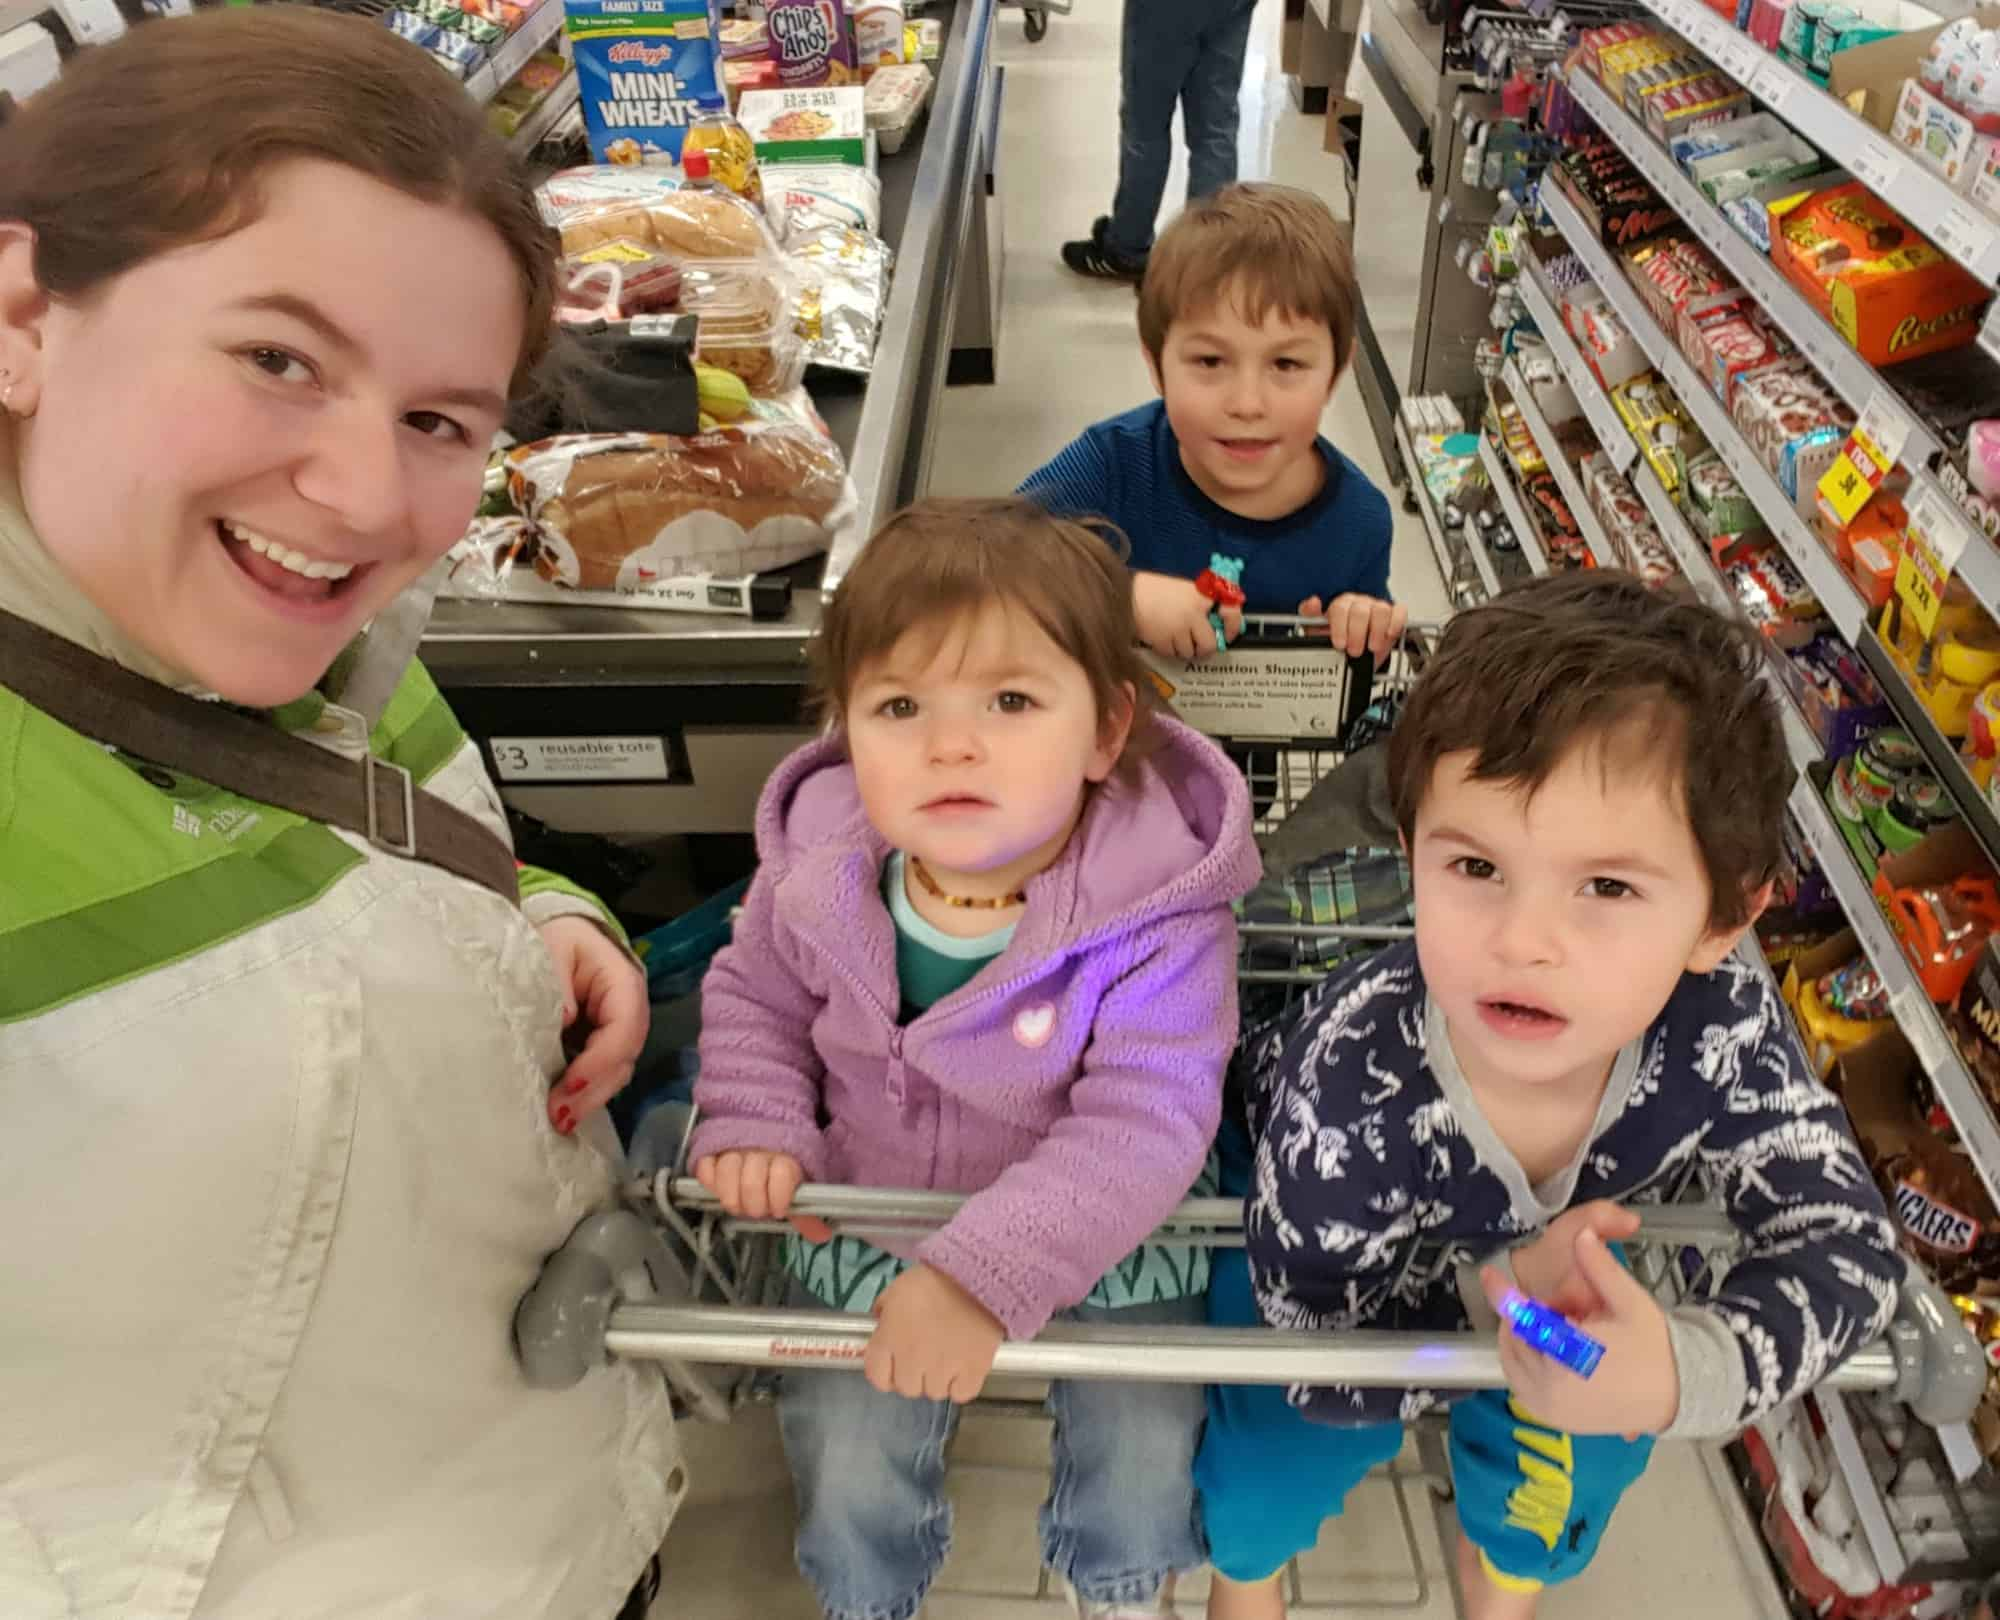 chaos at the grocery store